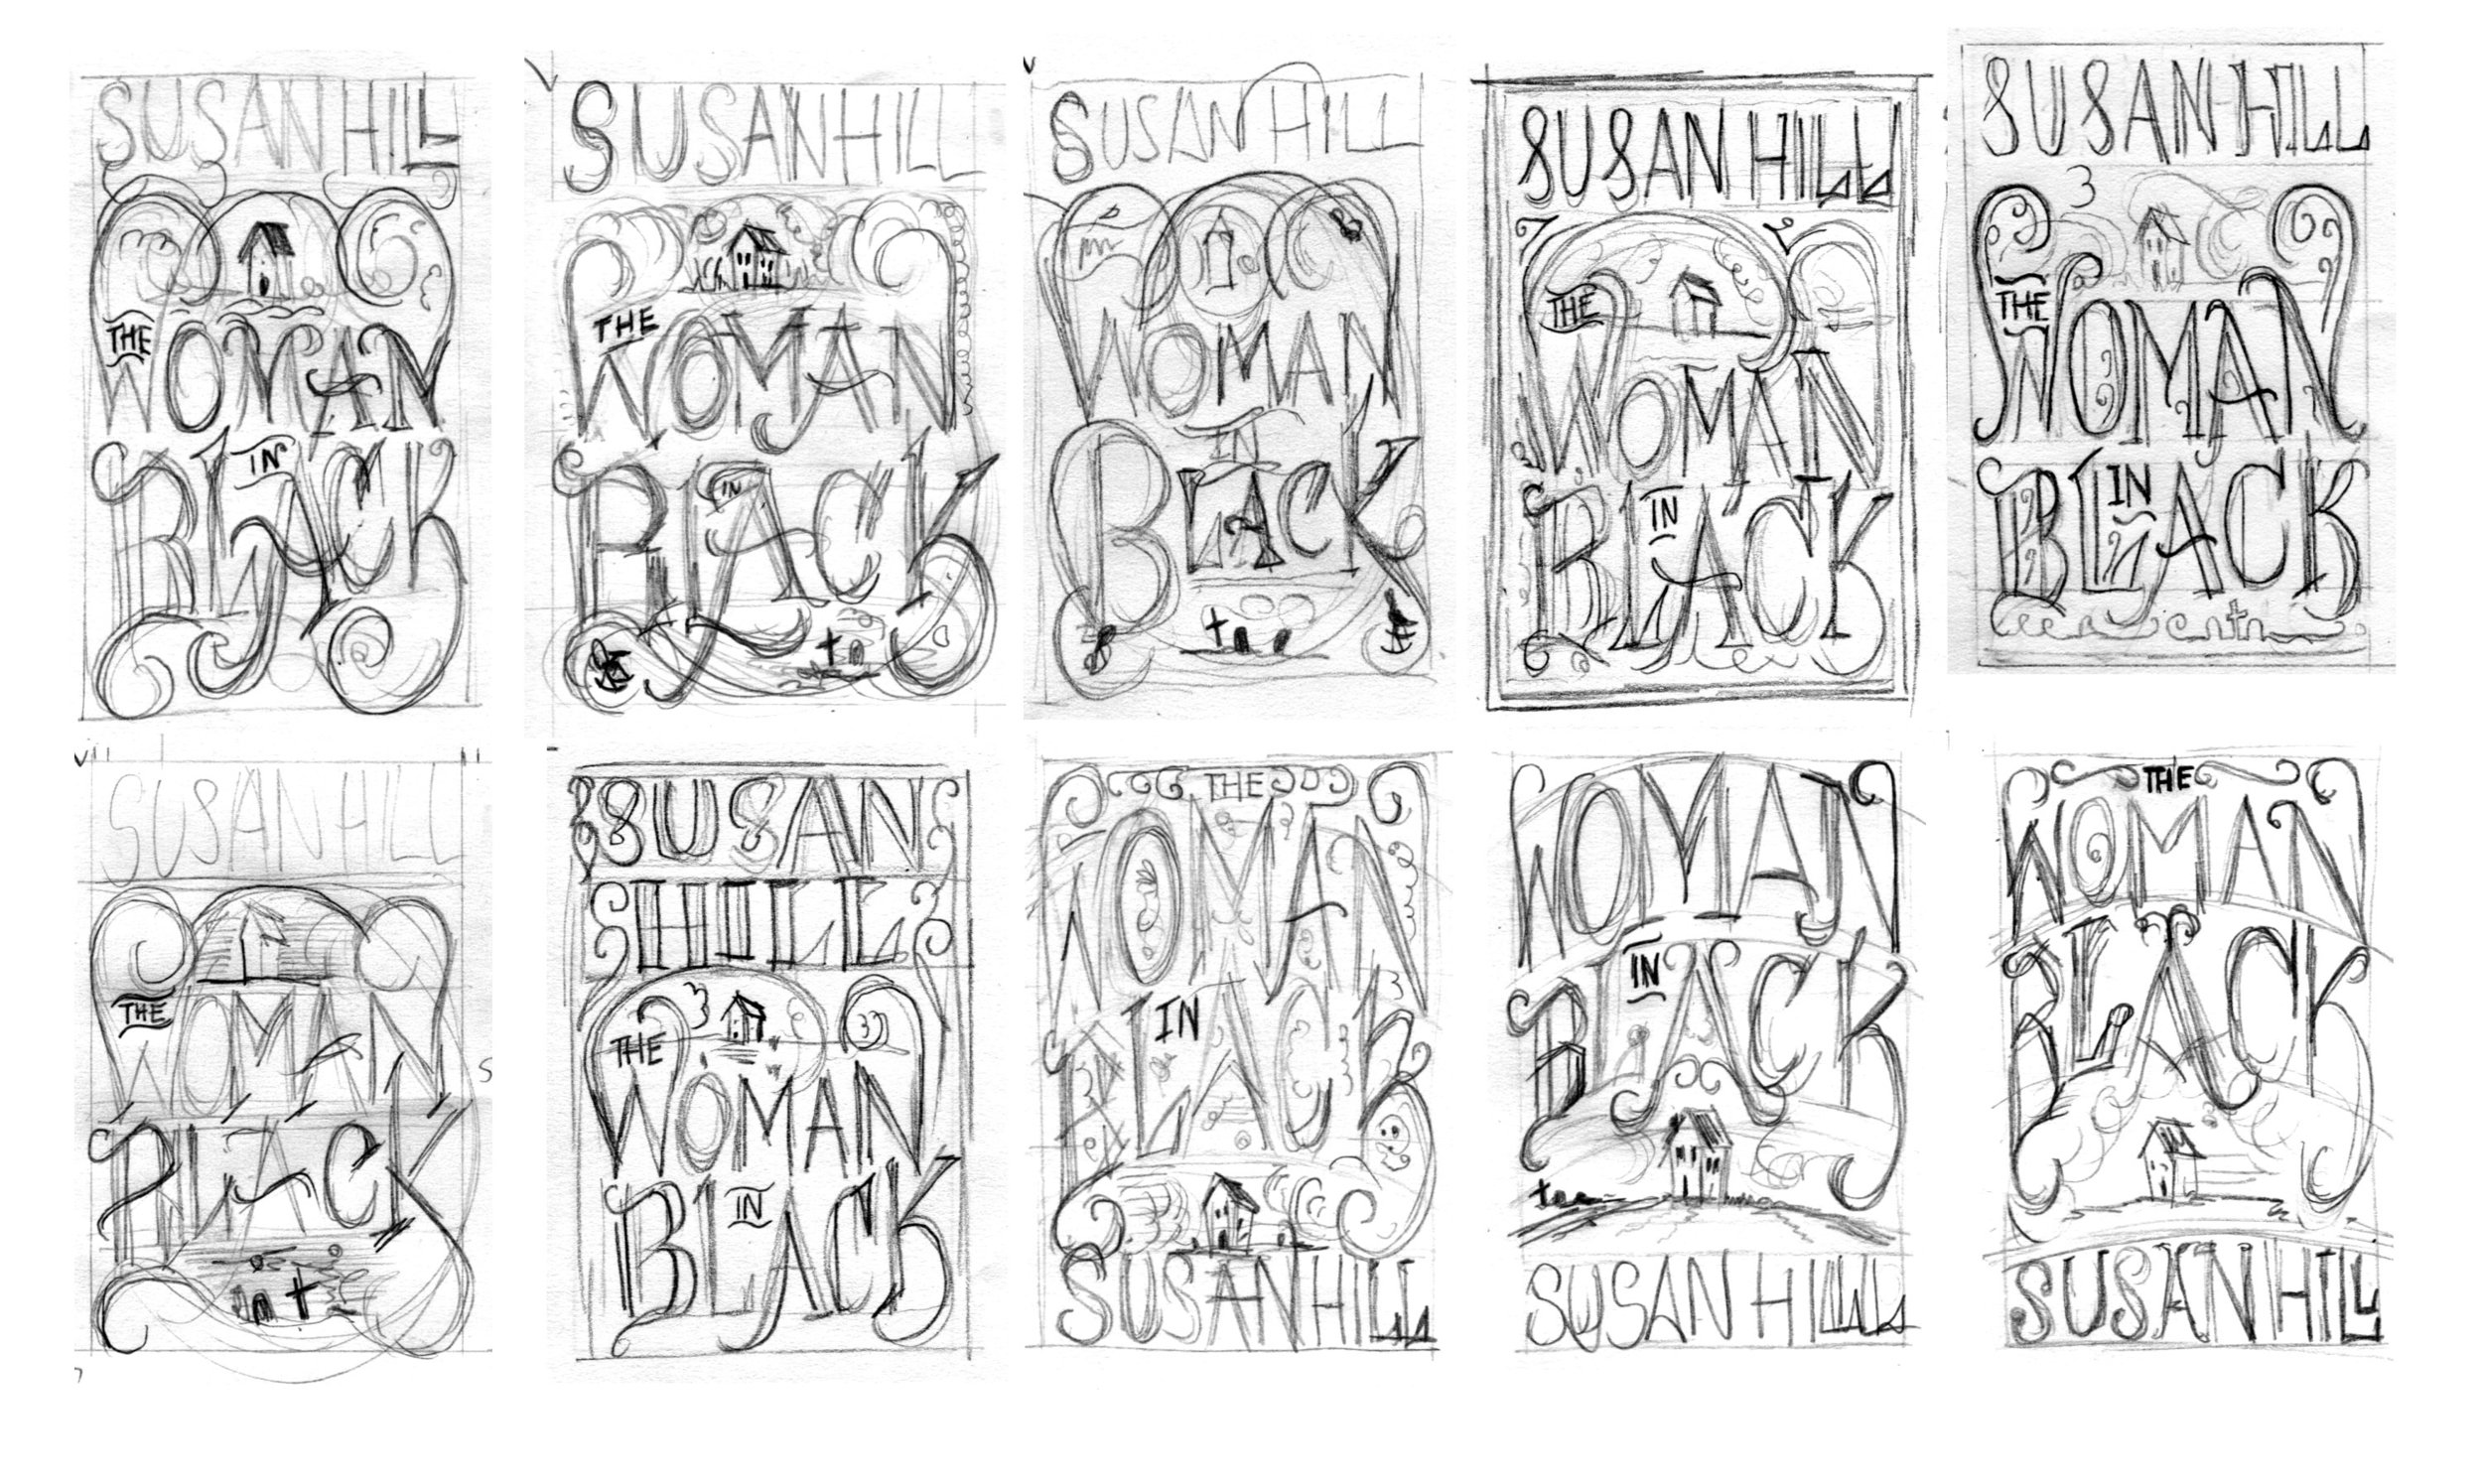 Thumbnails exploring various lock-ups of image and lettering